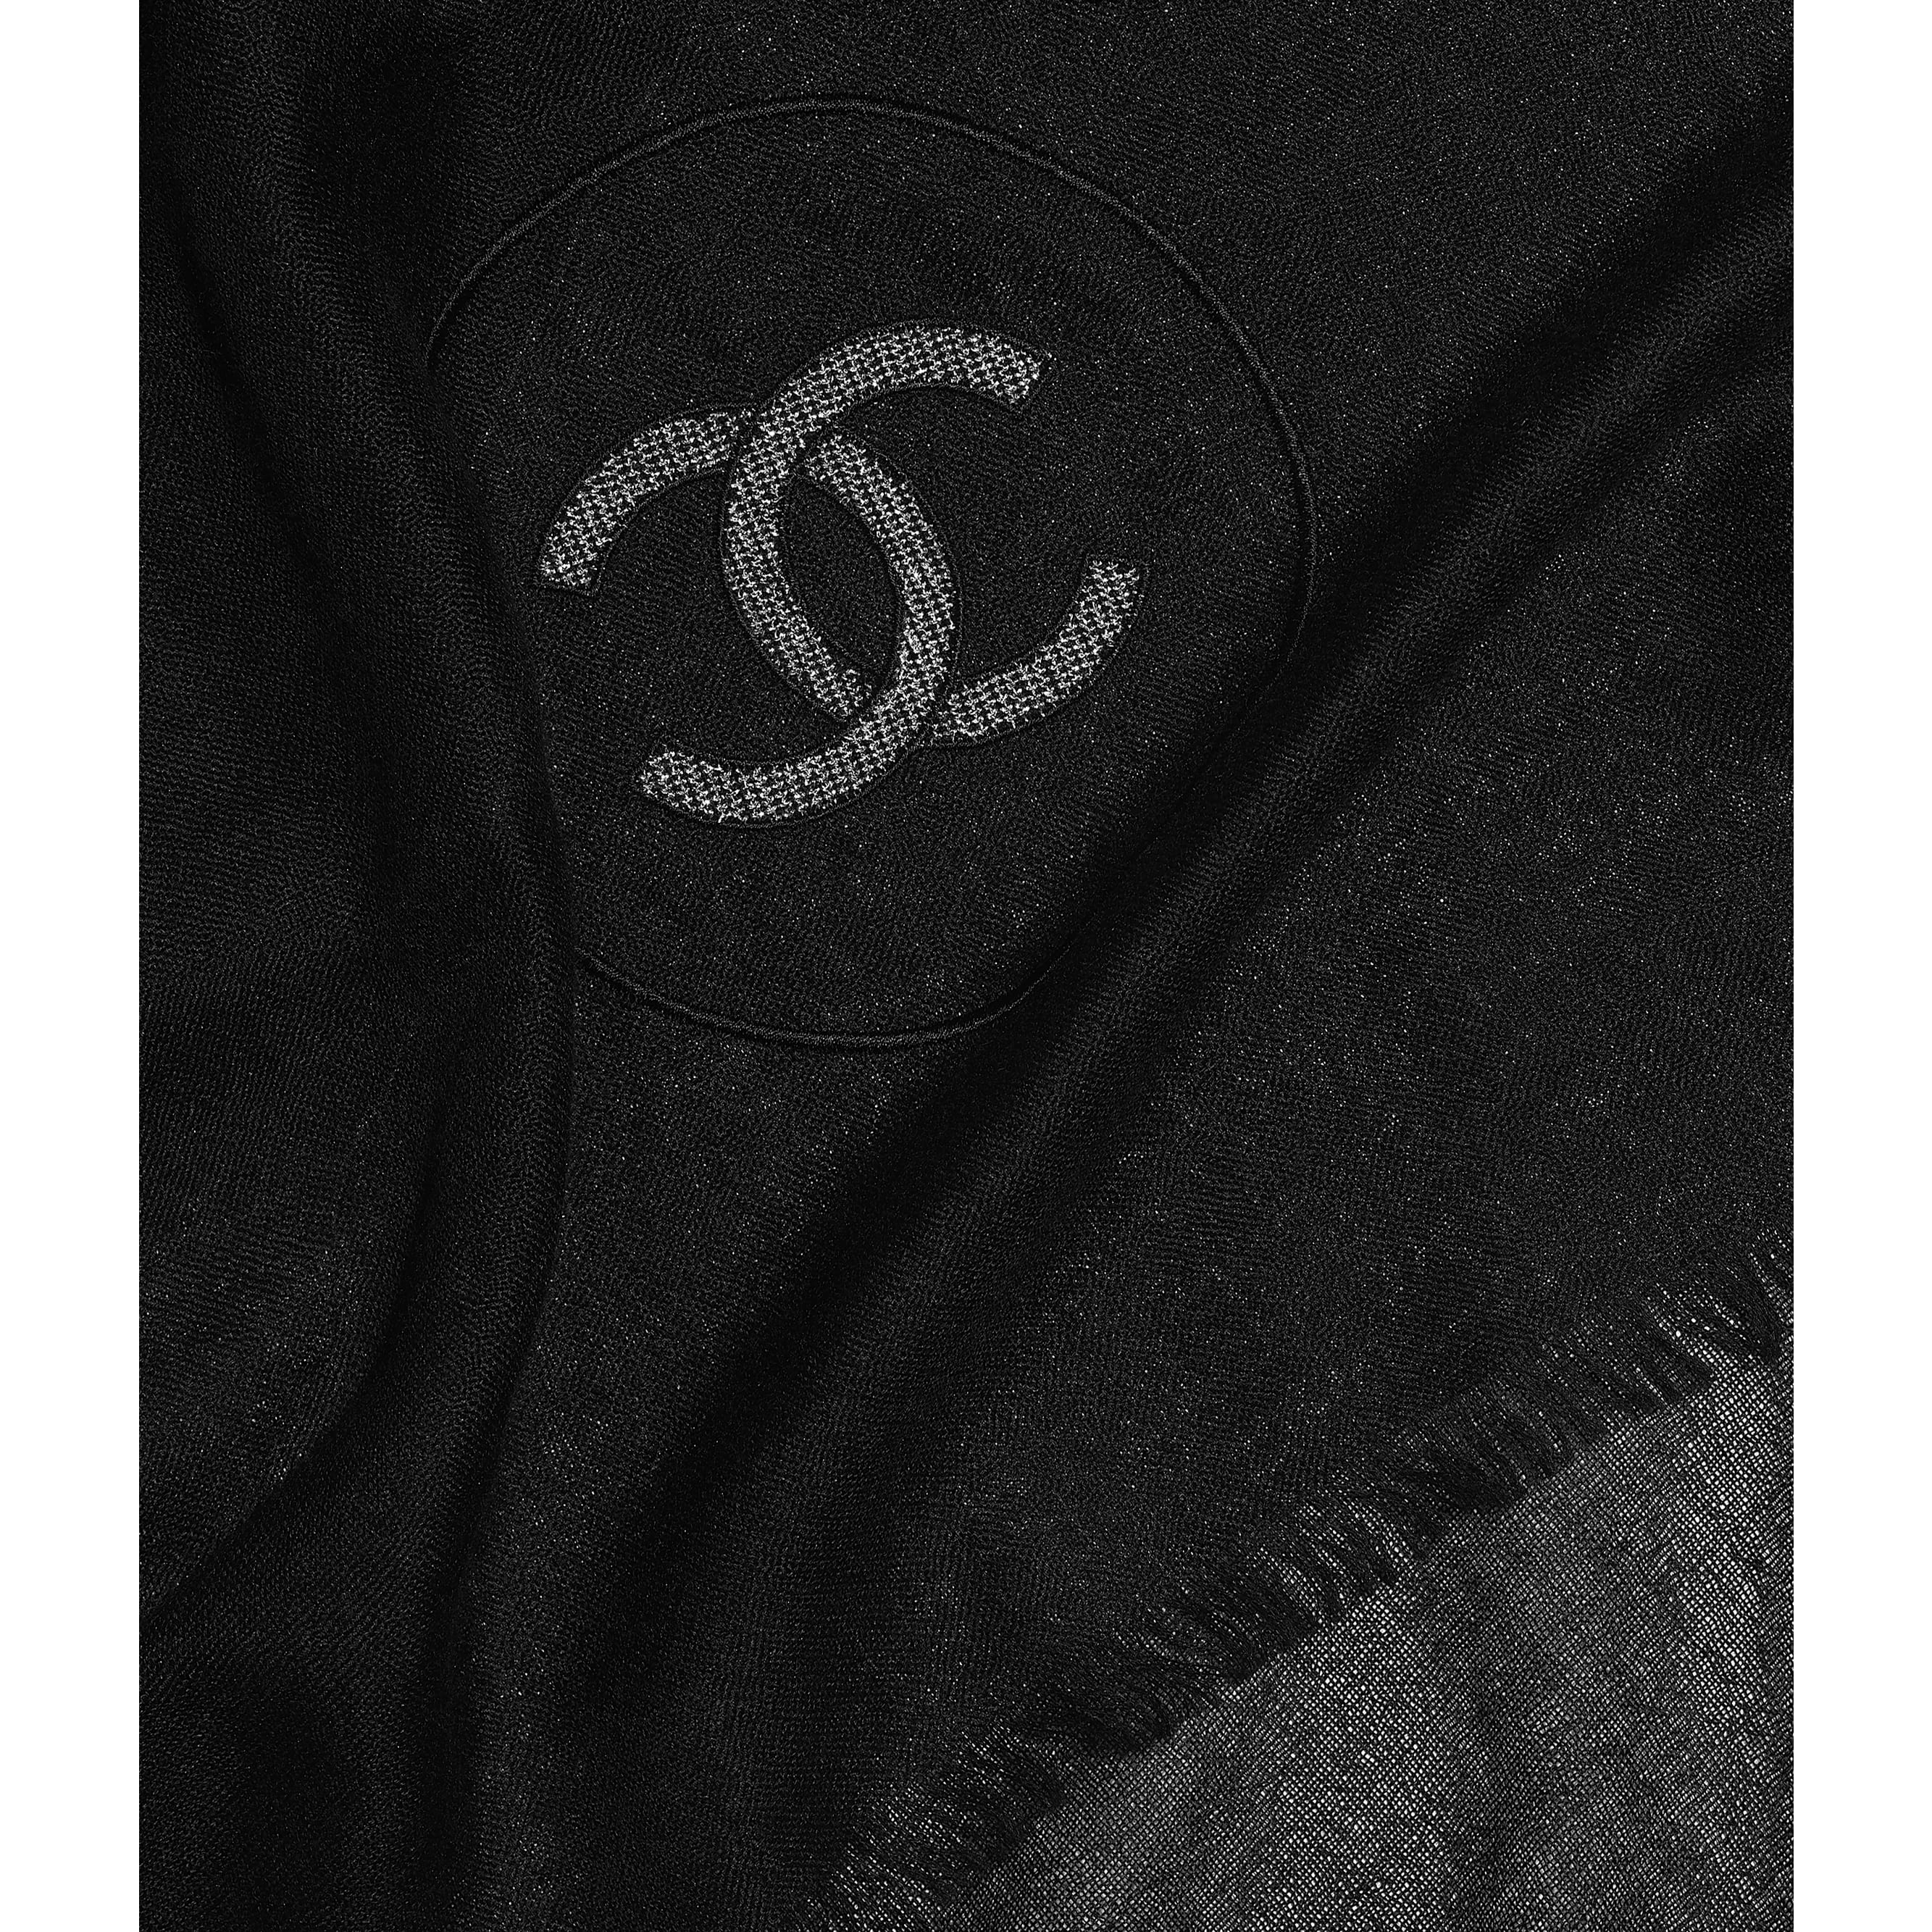 Stole - Black - Cashmere, Silk & Metallic Fibers - CHANEL - Default view - see standard sized version